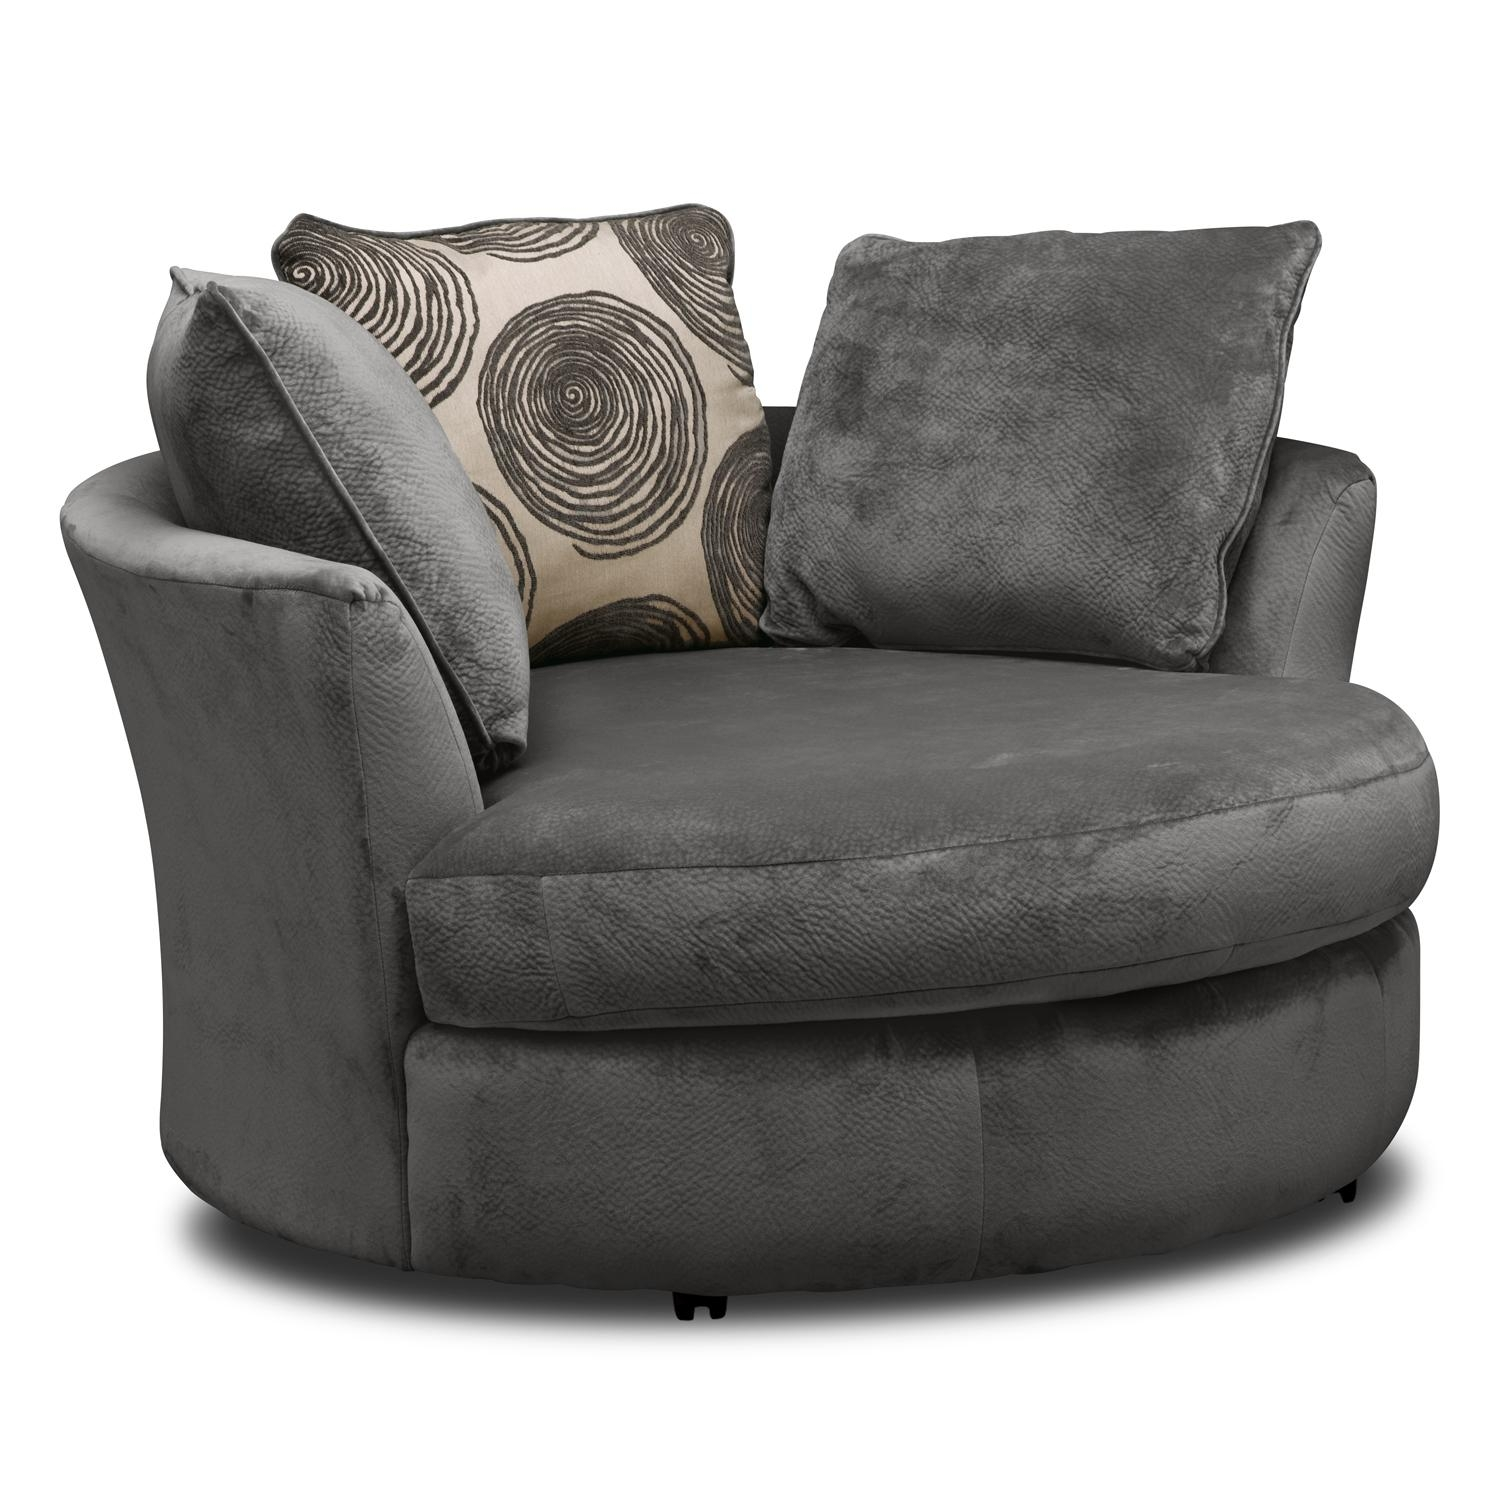 Round Sofa Chair With Regard To Circular Chairs Image 15 Of 20